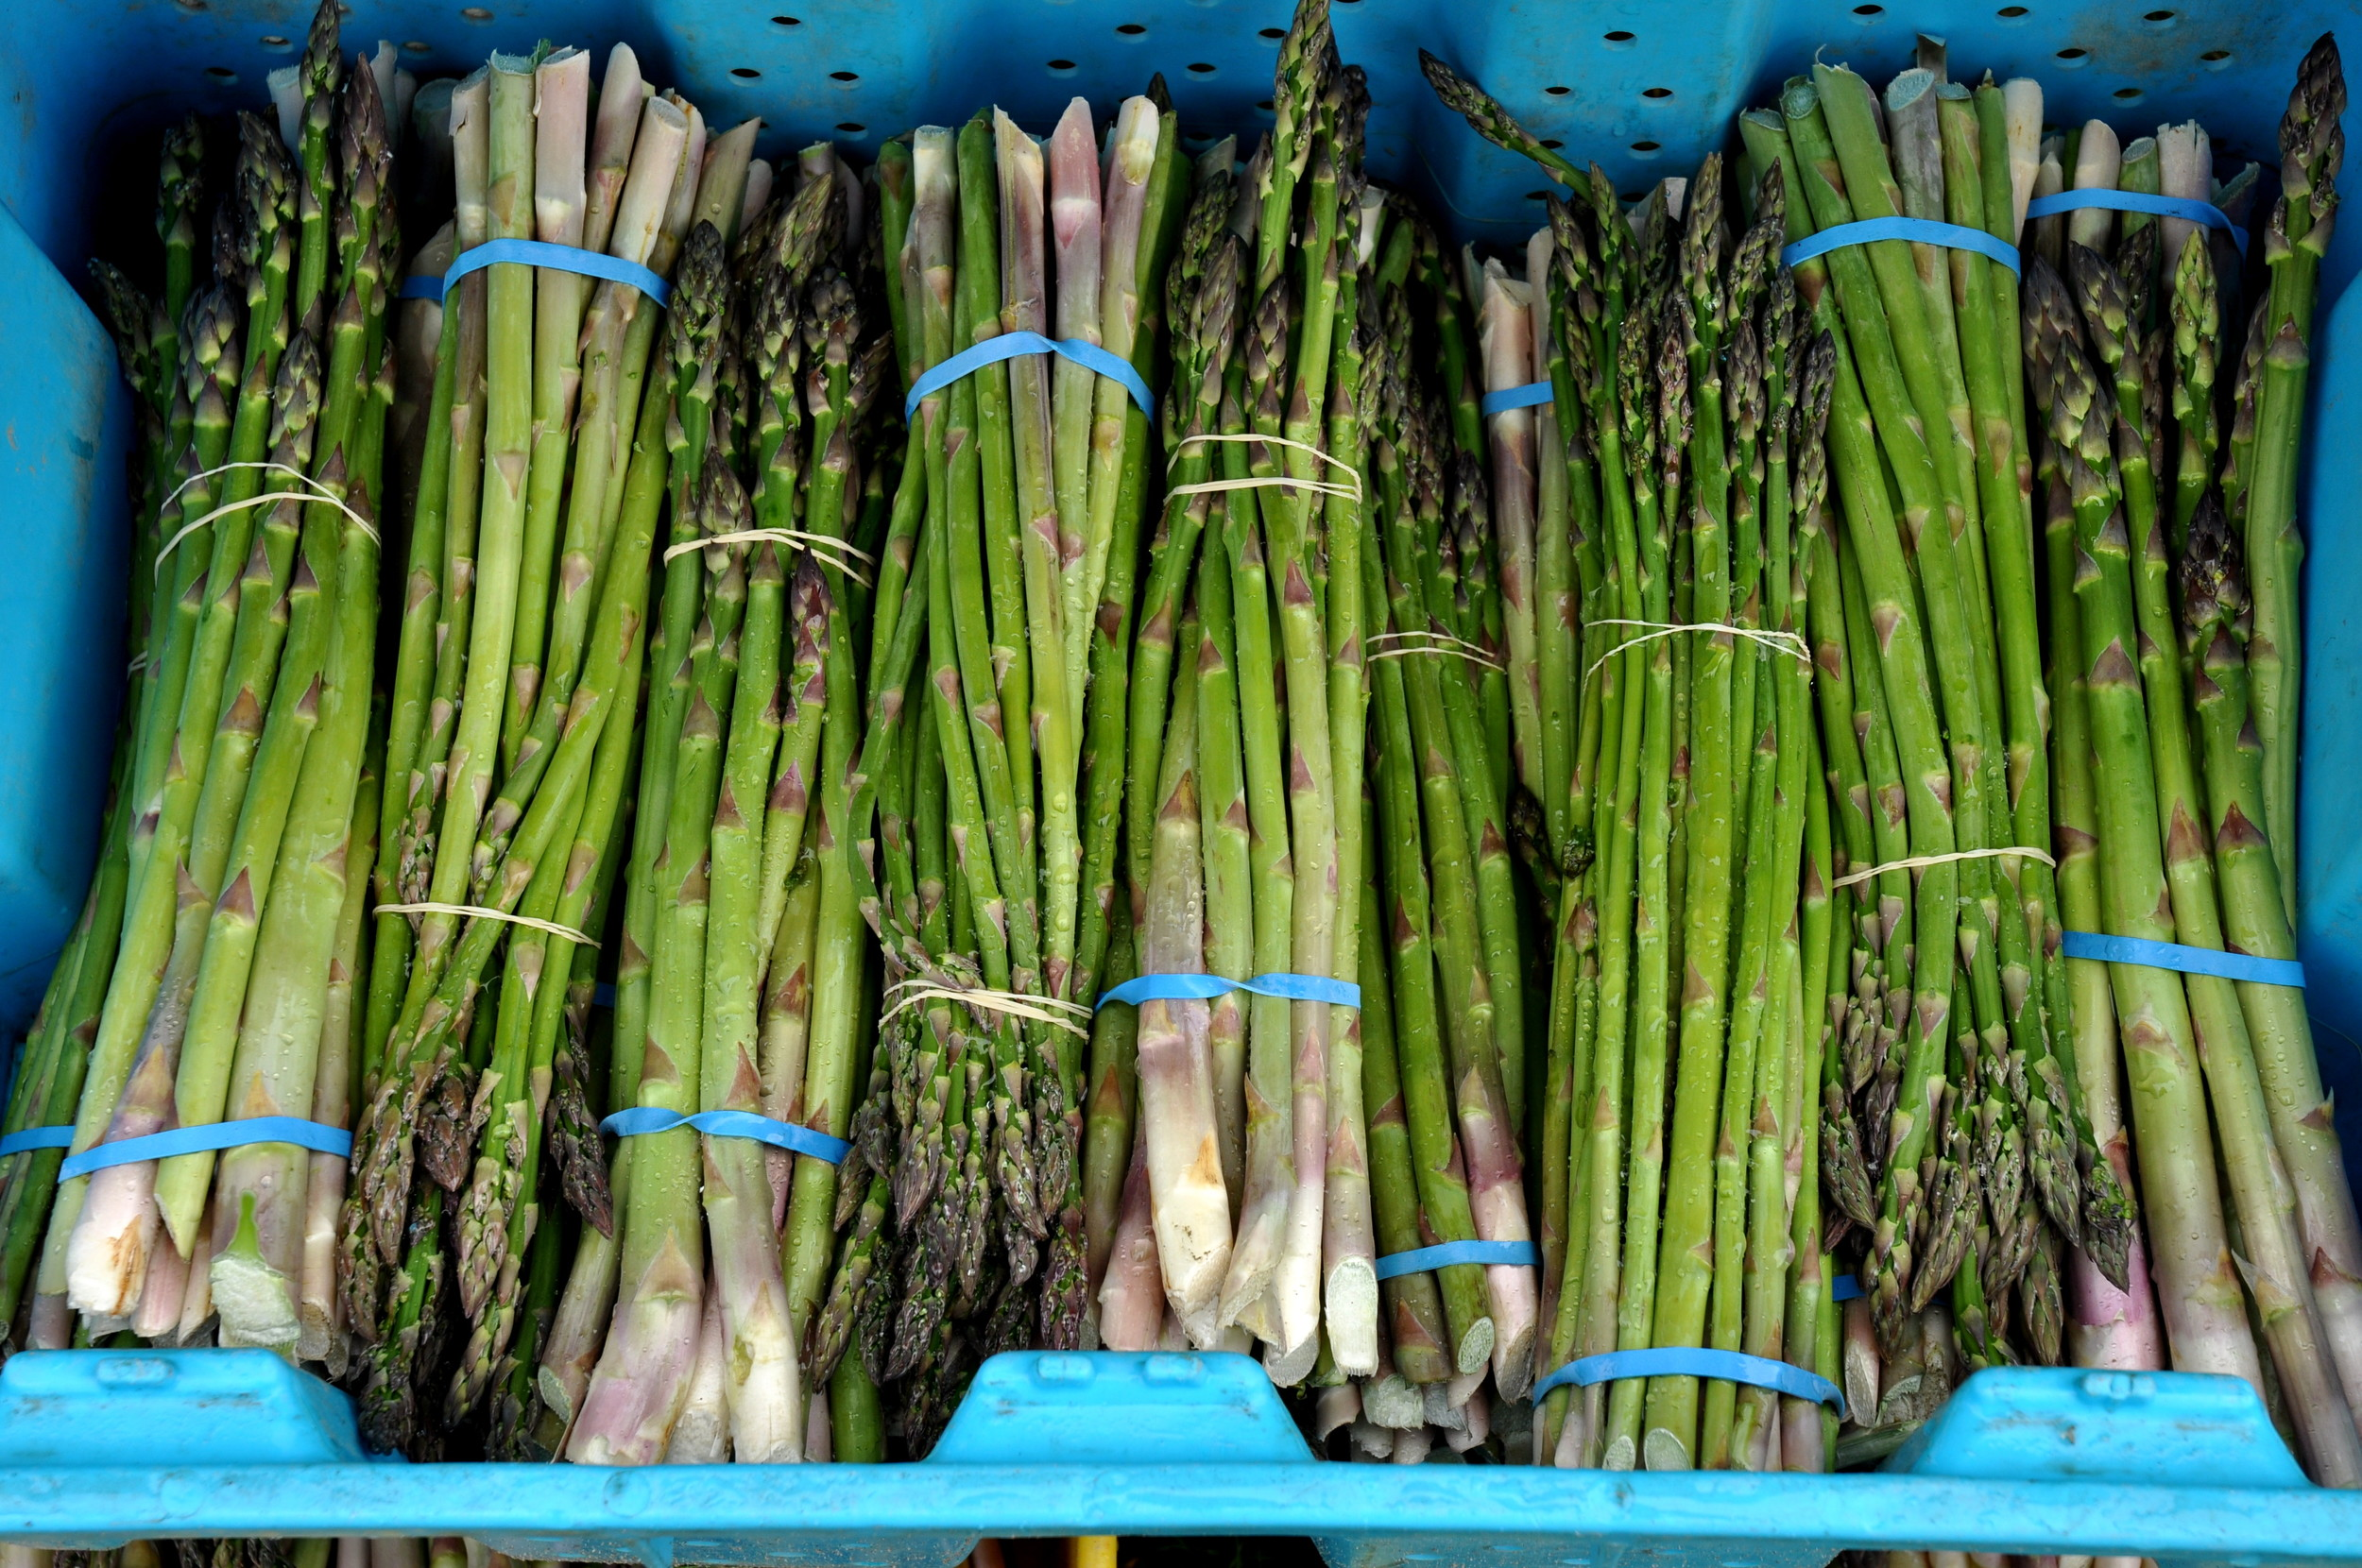 Organic asparagus from Alvarez Organic Farms. Photo copyright 2011 by Zachary D. Lyons.